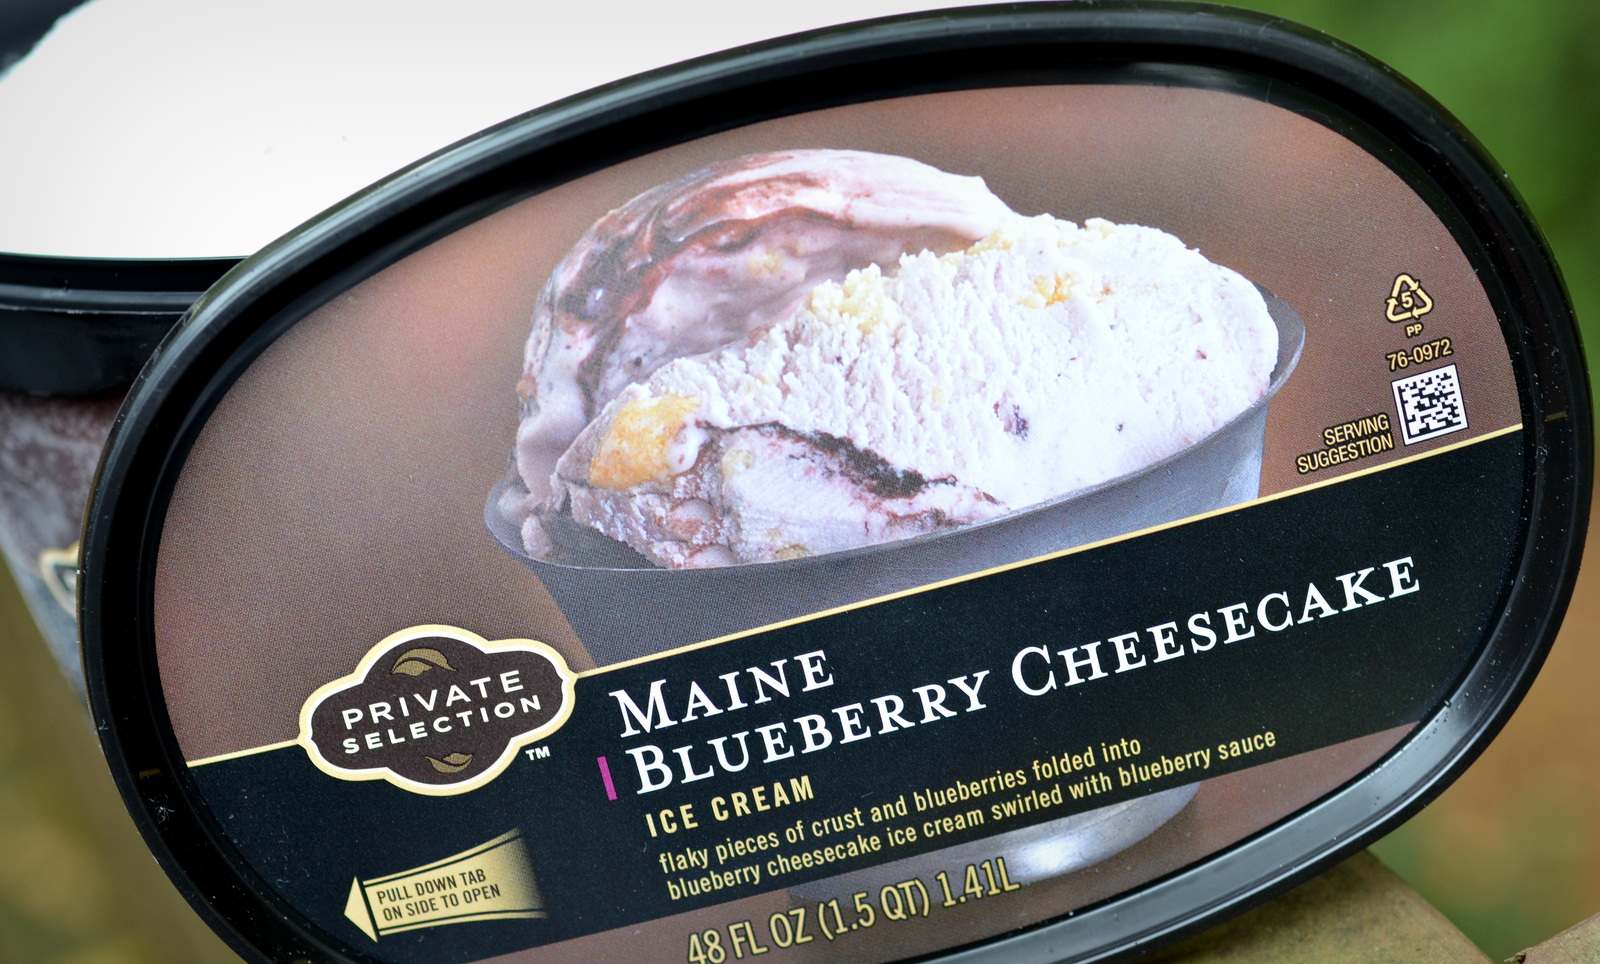 jerry s blueberry cheesecake had been my first cheesecake ice cream ...